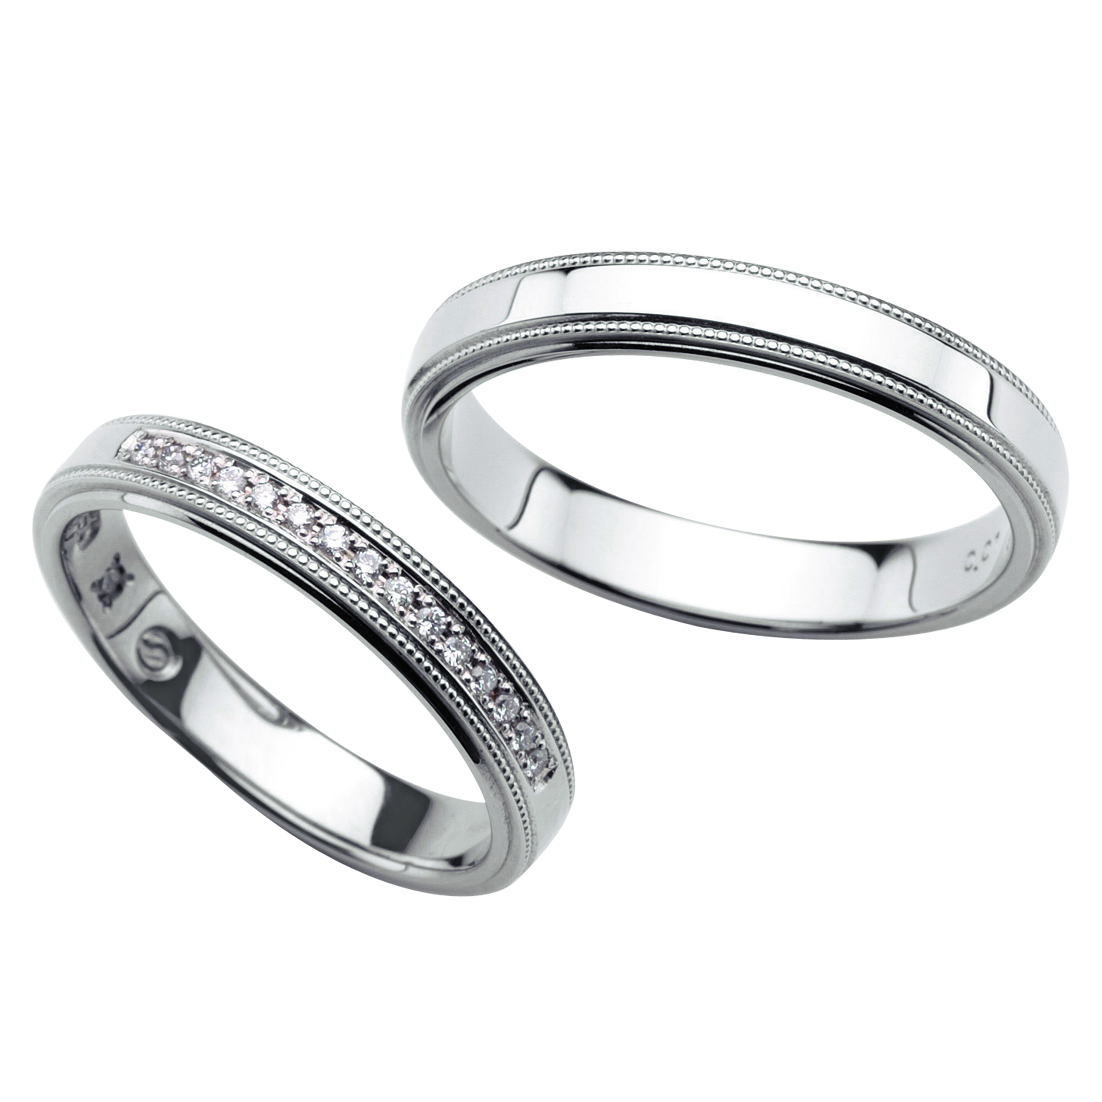 Wedding Bands - Singapore:Kira_01